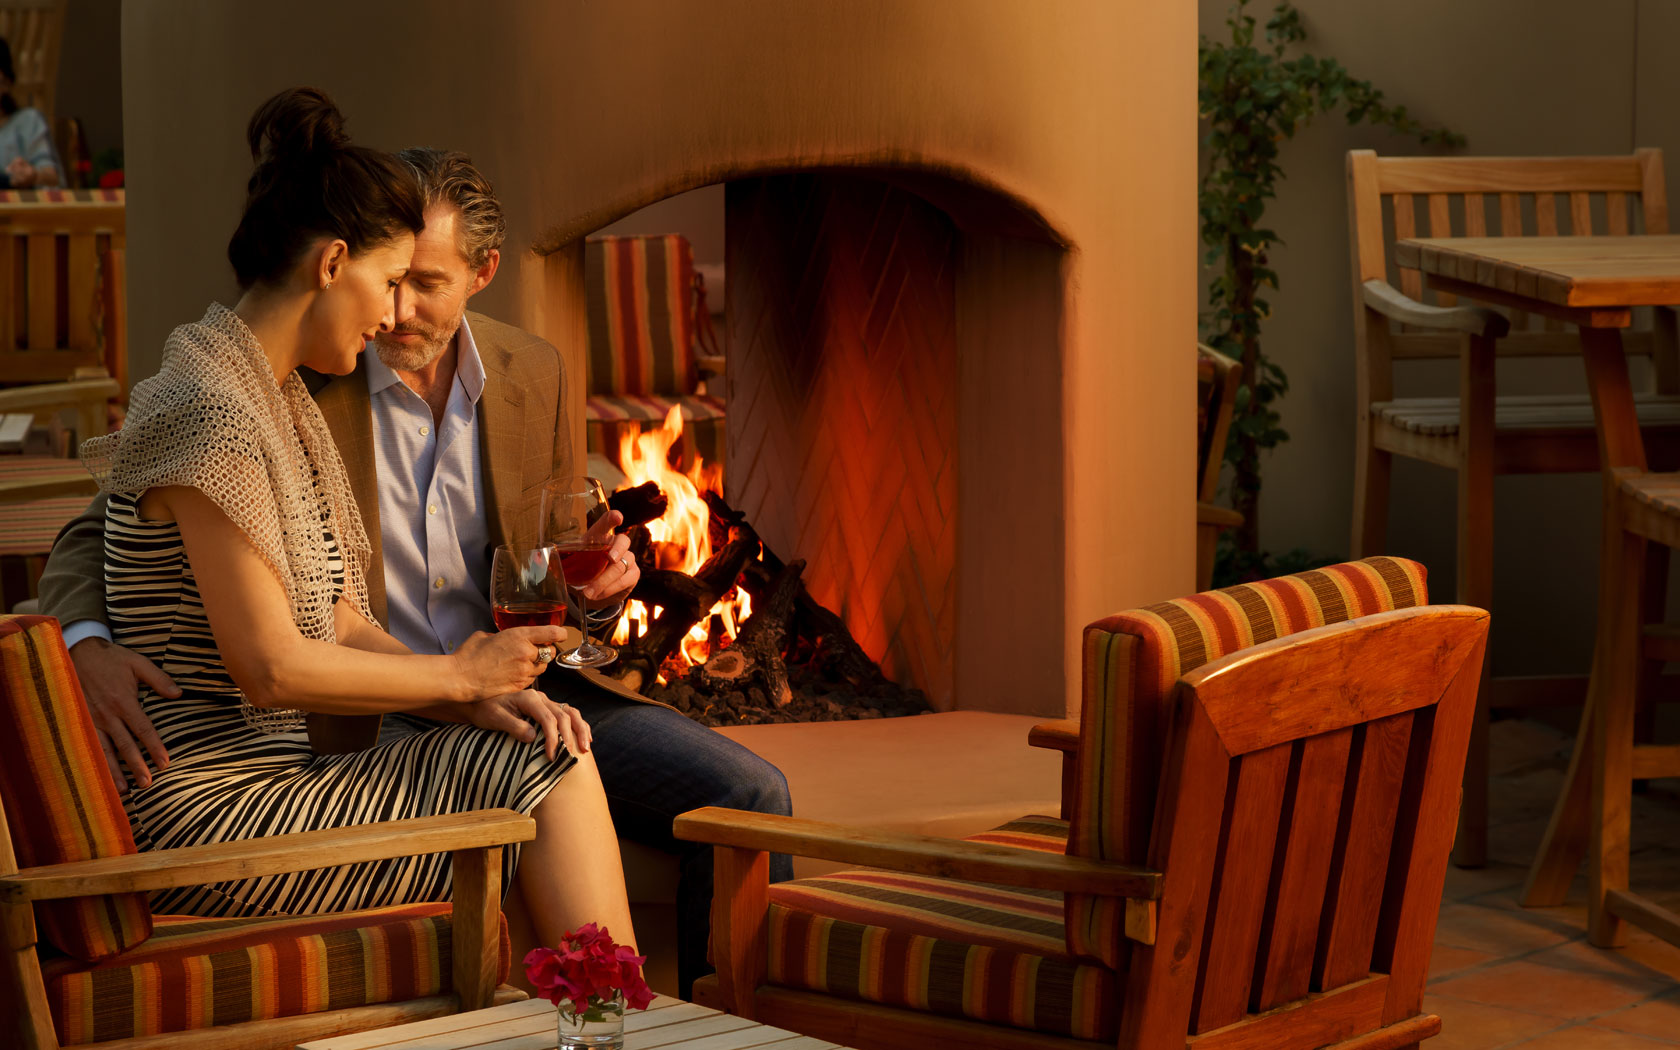 Couple drinking wine by fireplace